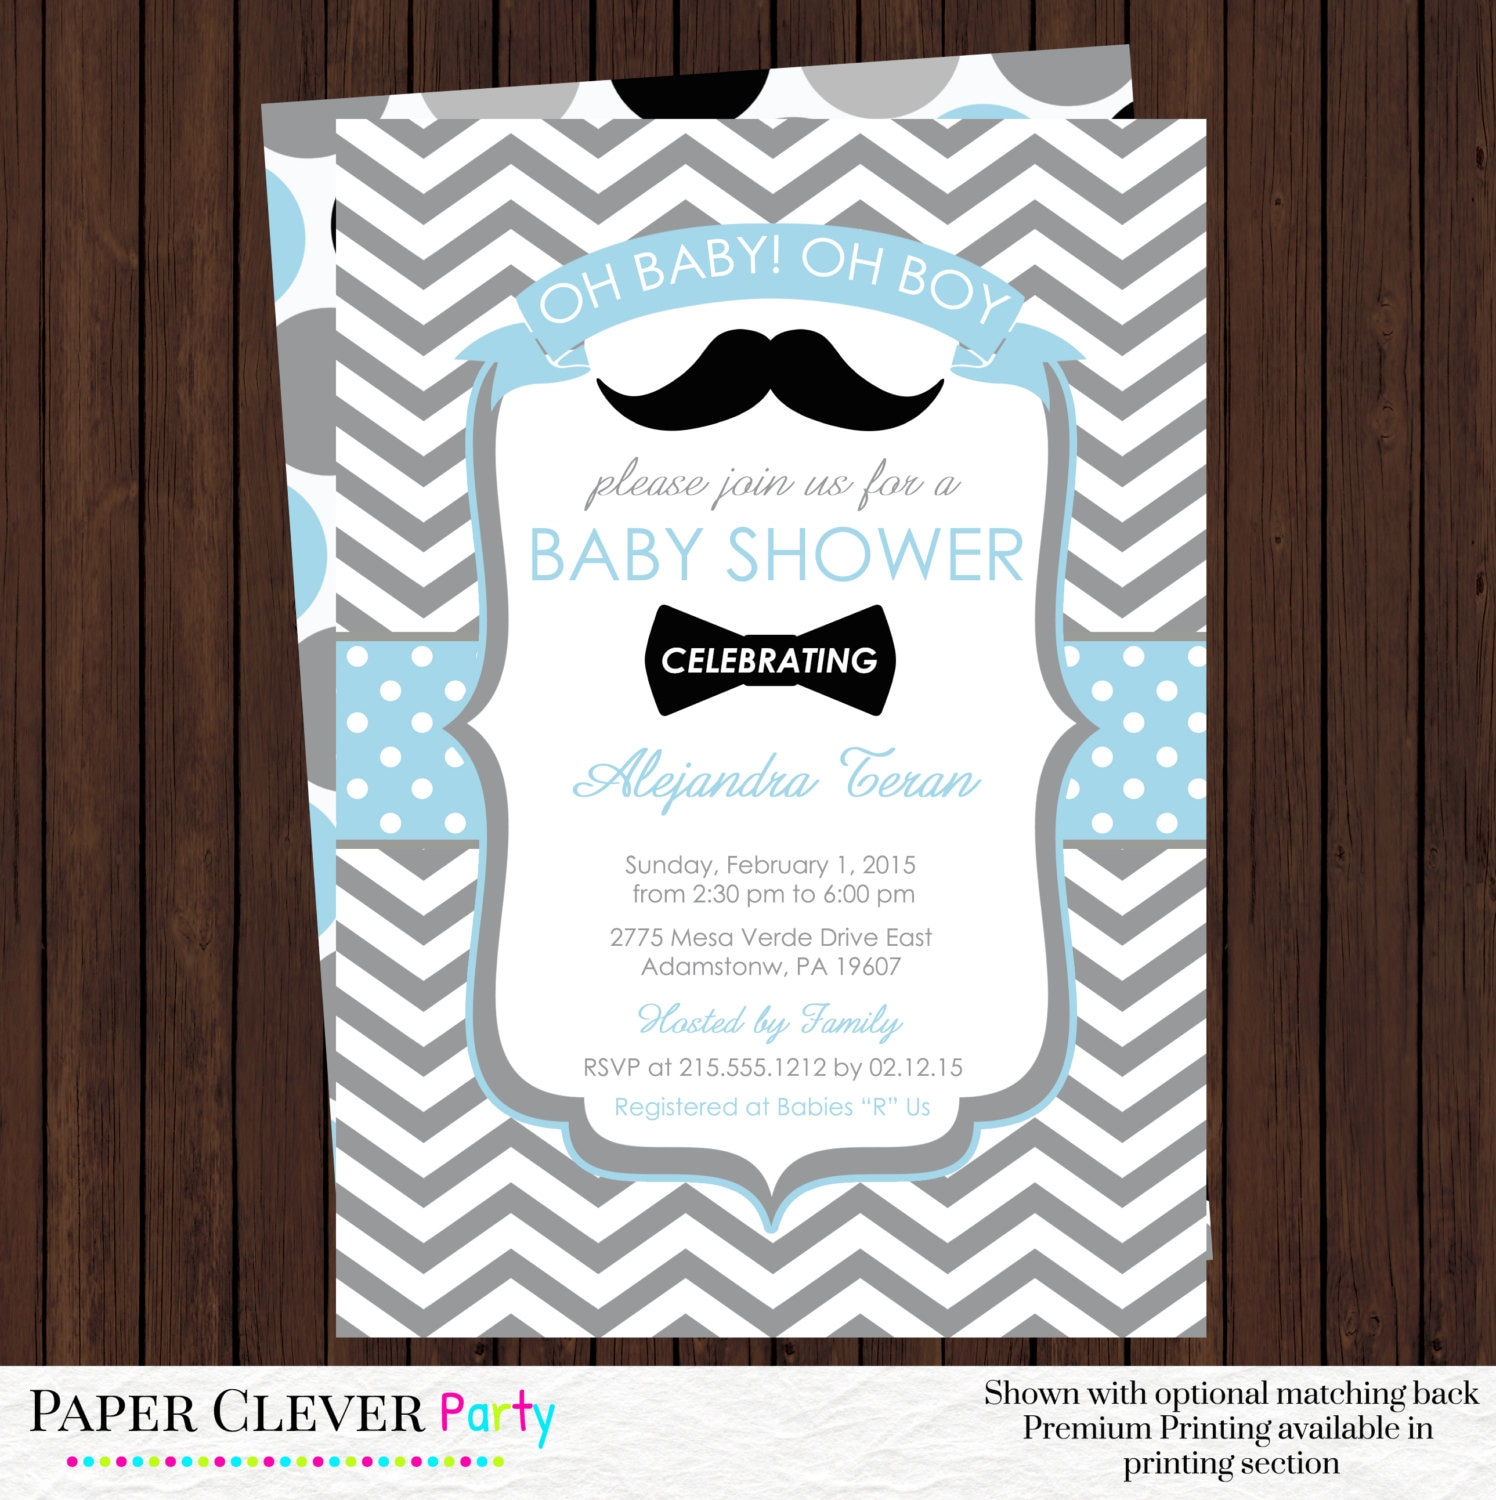 Little Man Baby Shower Invitations. Baby Shower Invitation Best 25 ...